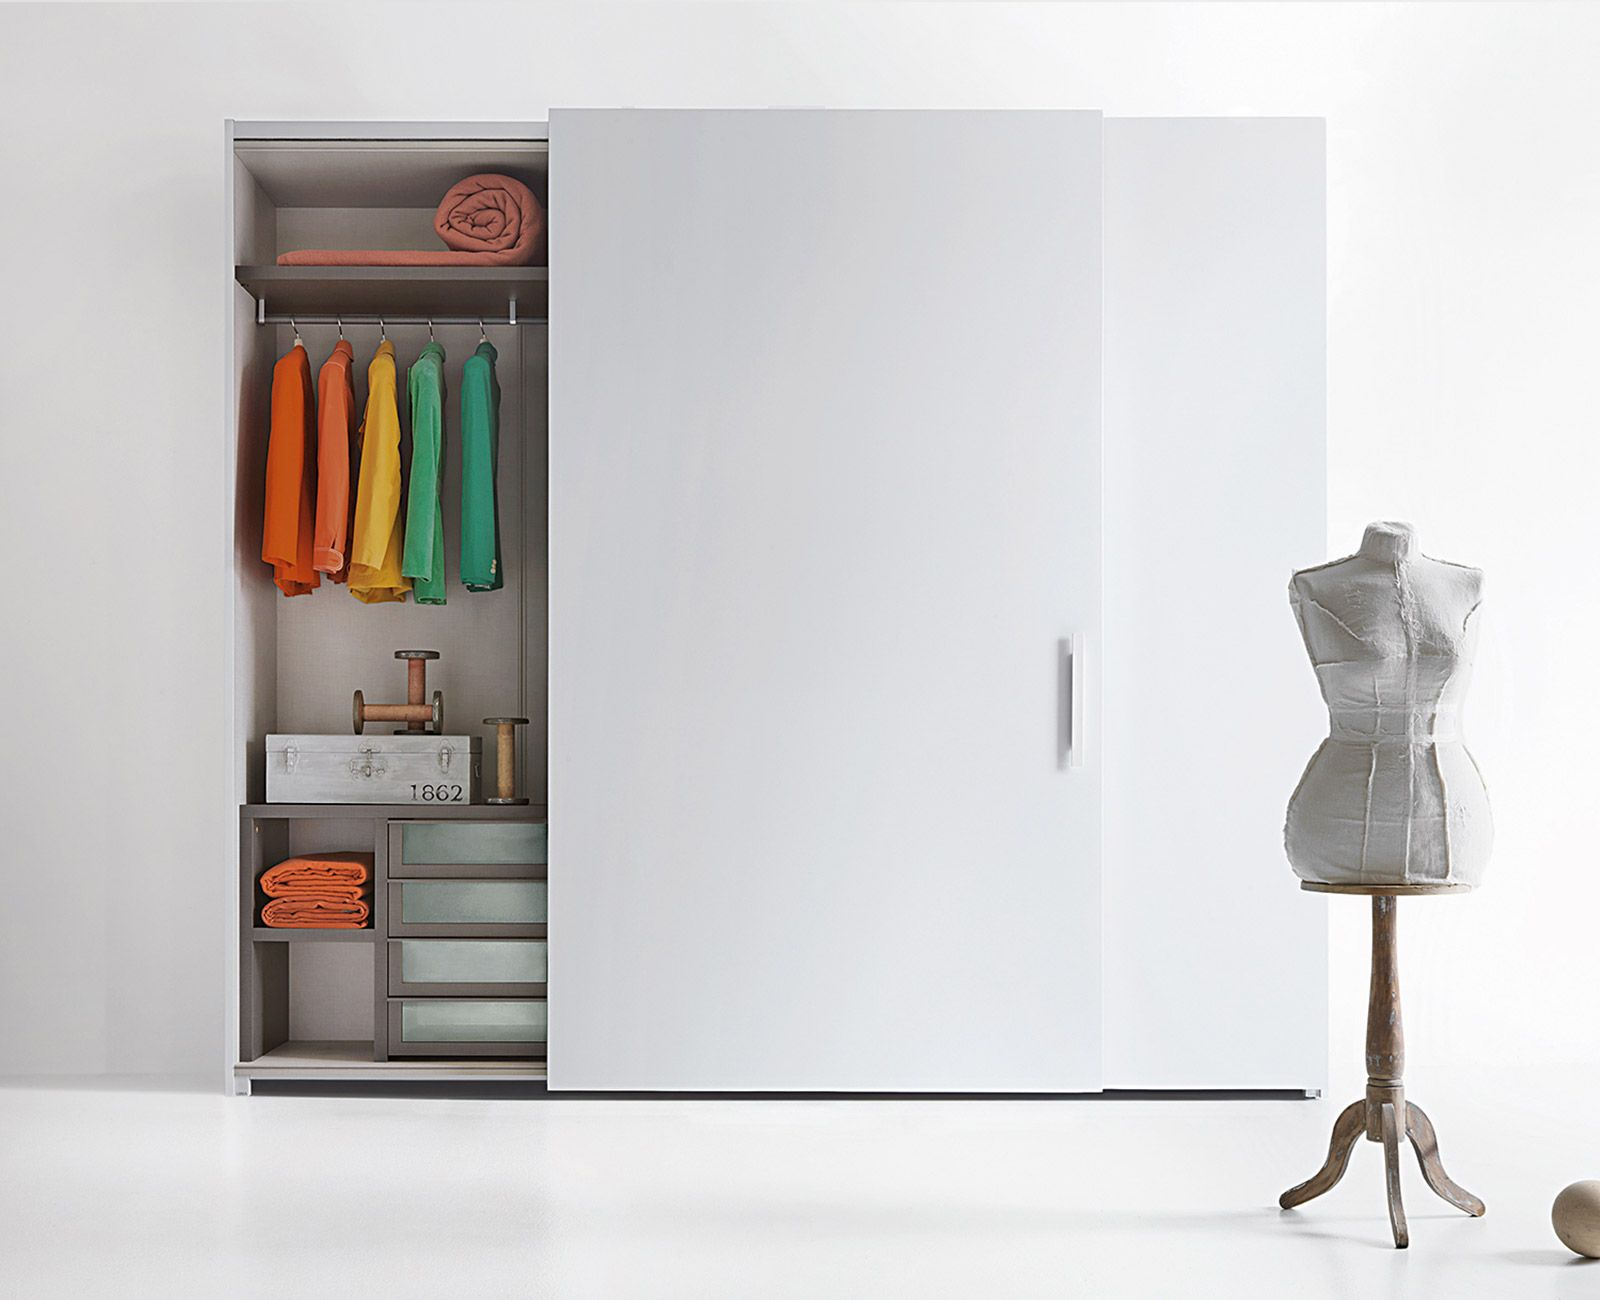 Meuble Tv Forza - Wardrobe Sliding Doors Lema Forza Storage Pinterest [mjhdah]https://s-media-cache-ak0.pinimg.com/originals/c1/81/93/c181934bb897a6782745a235b025cc1e.jpg